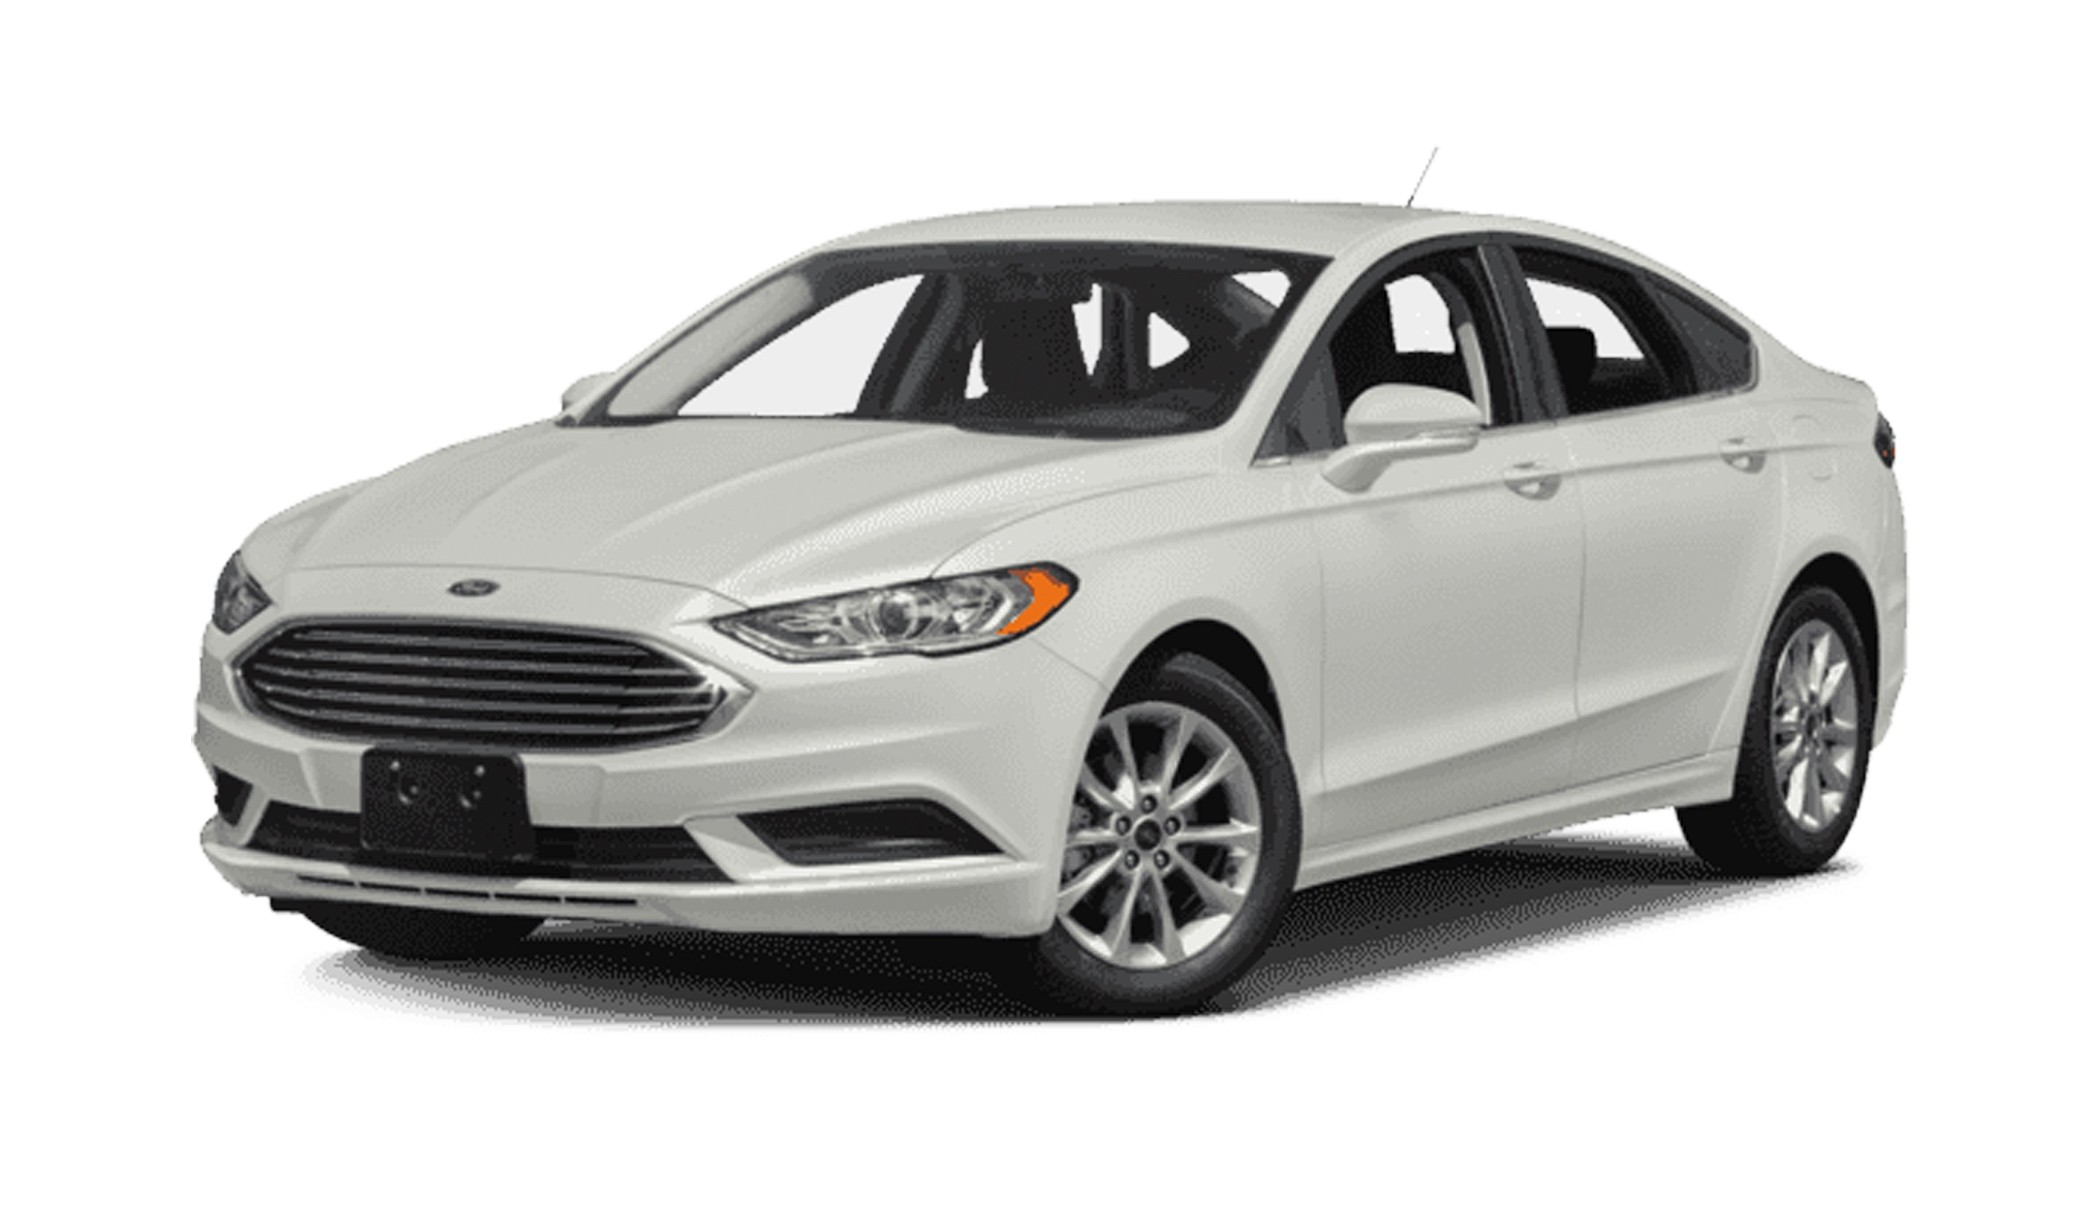 2012 ford fusion owners manual pdf